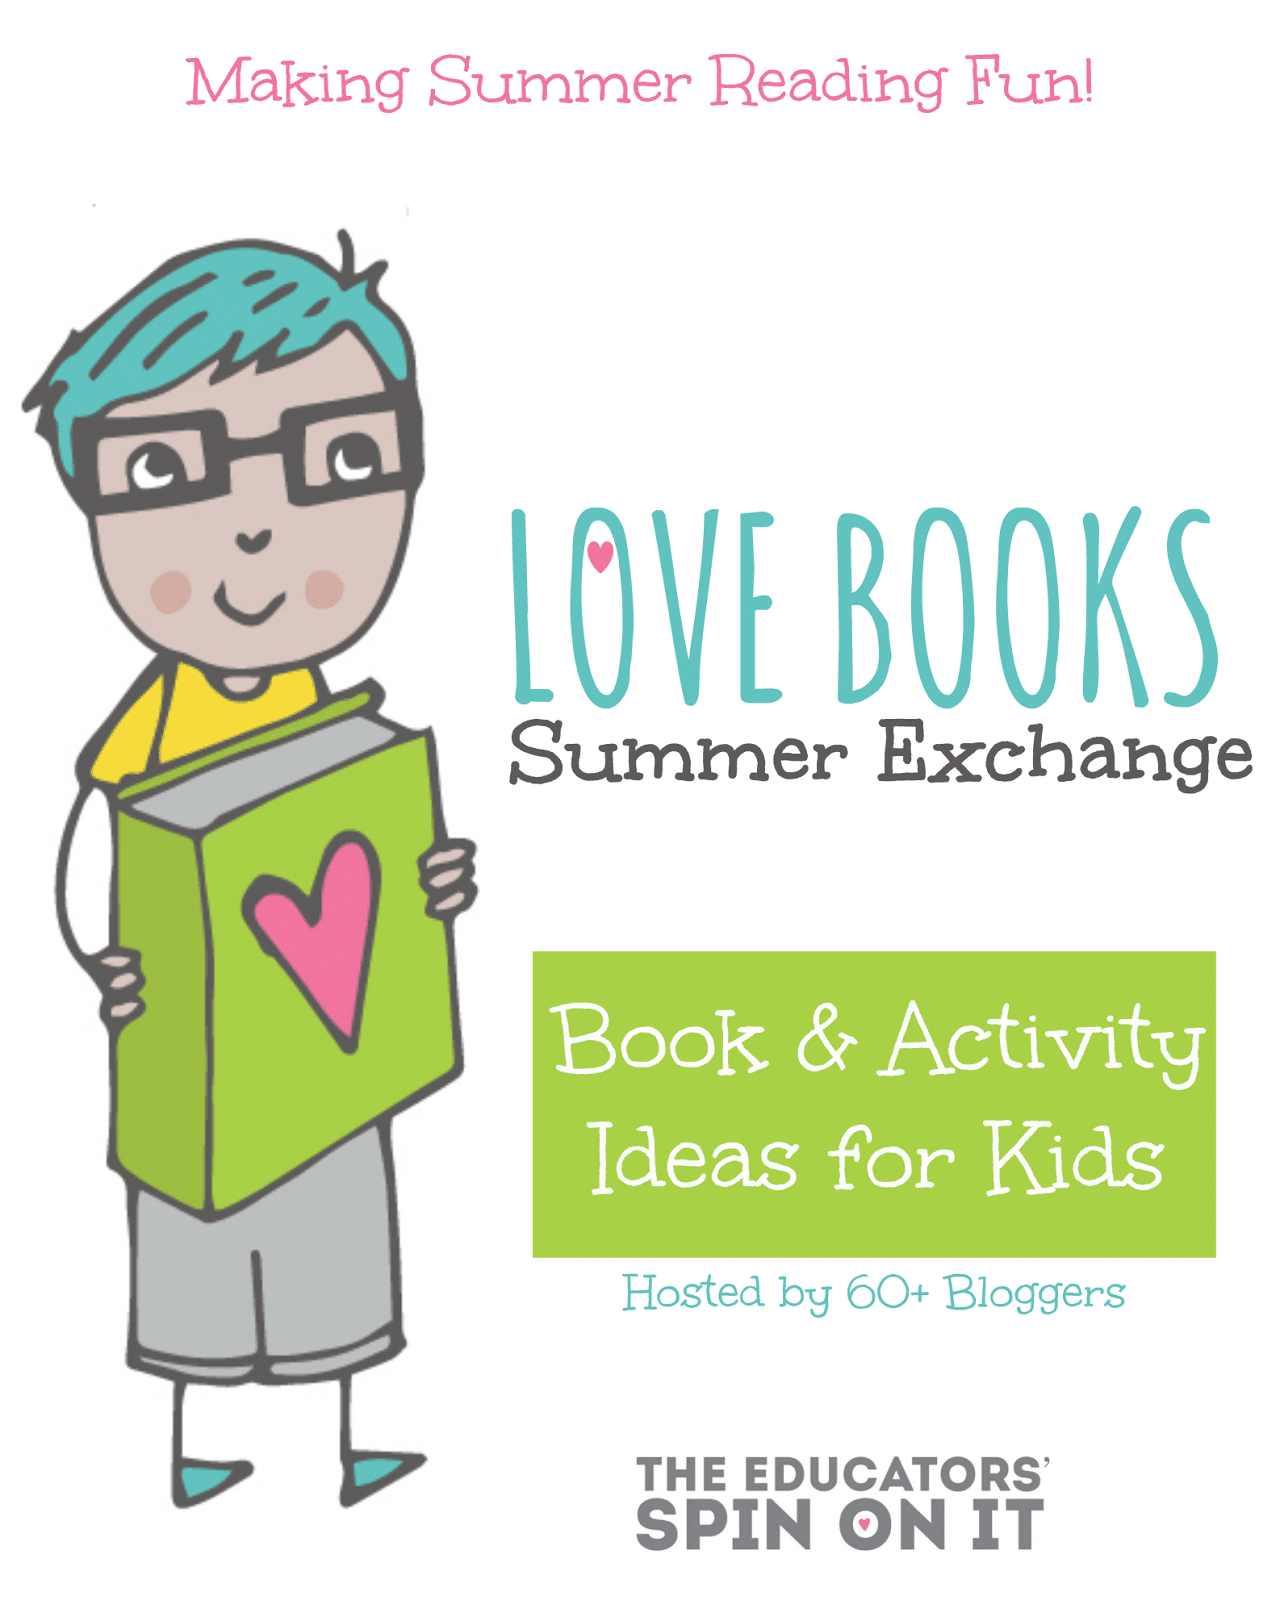 Book and Activity Ideas for Kids featured at the Love Books Summer Exchange hosted by The Educators' Spin On It